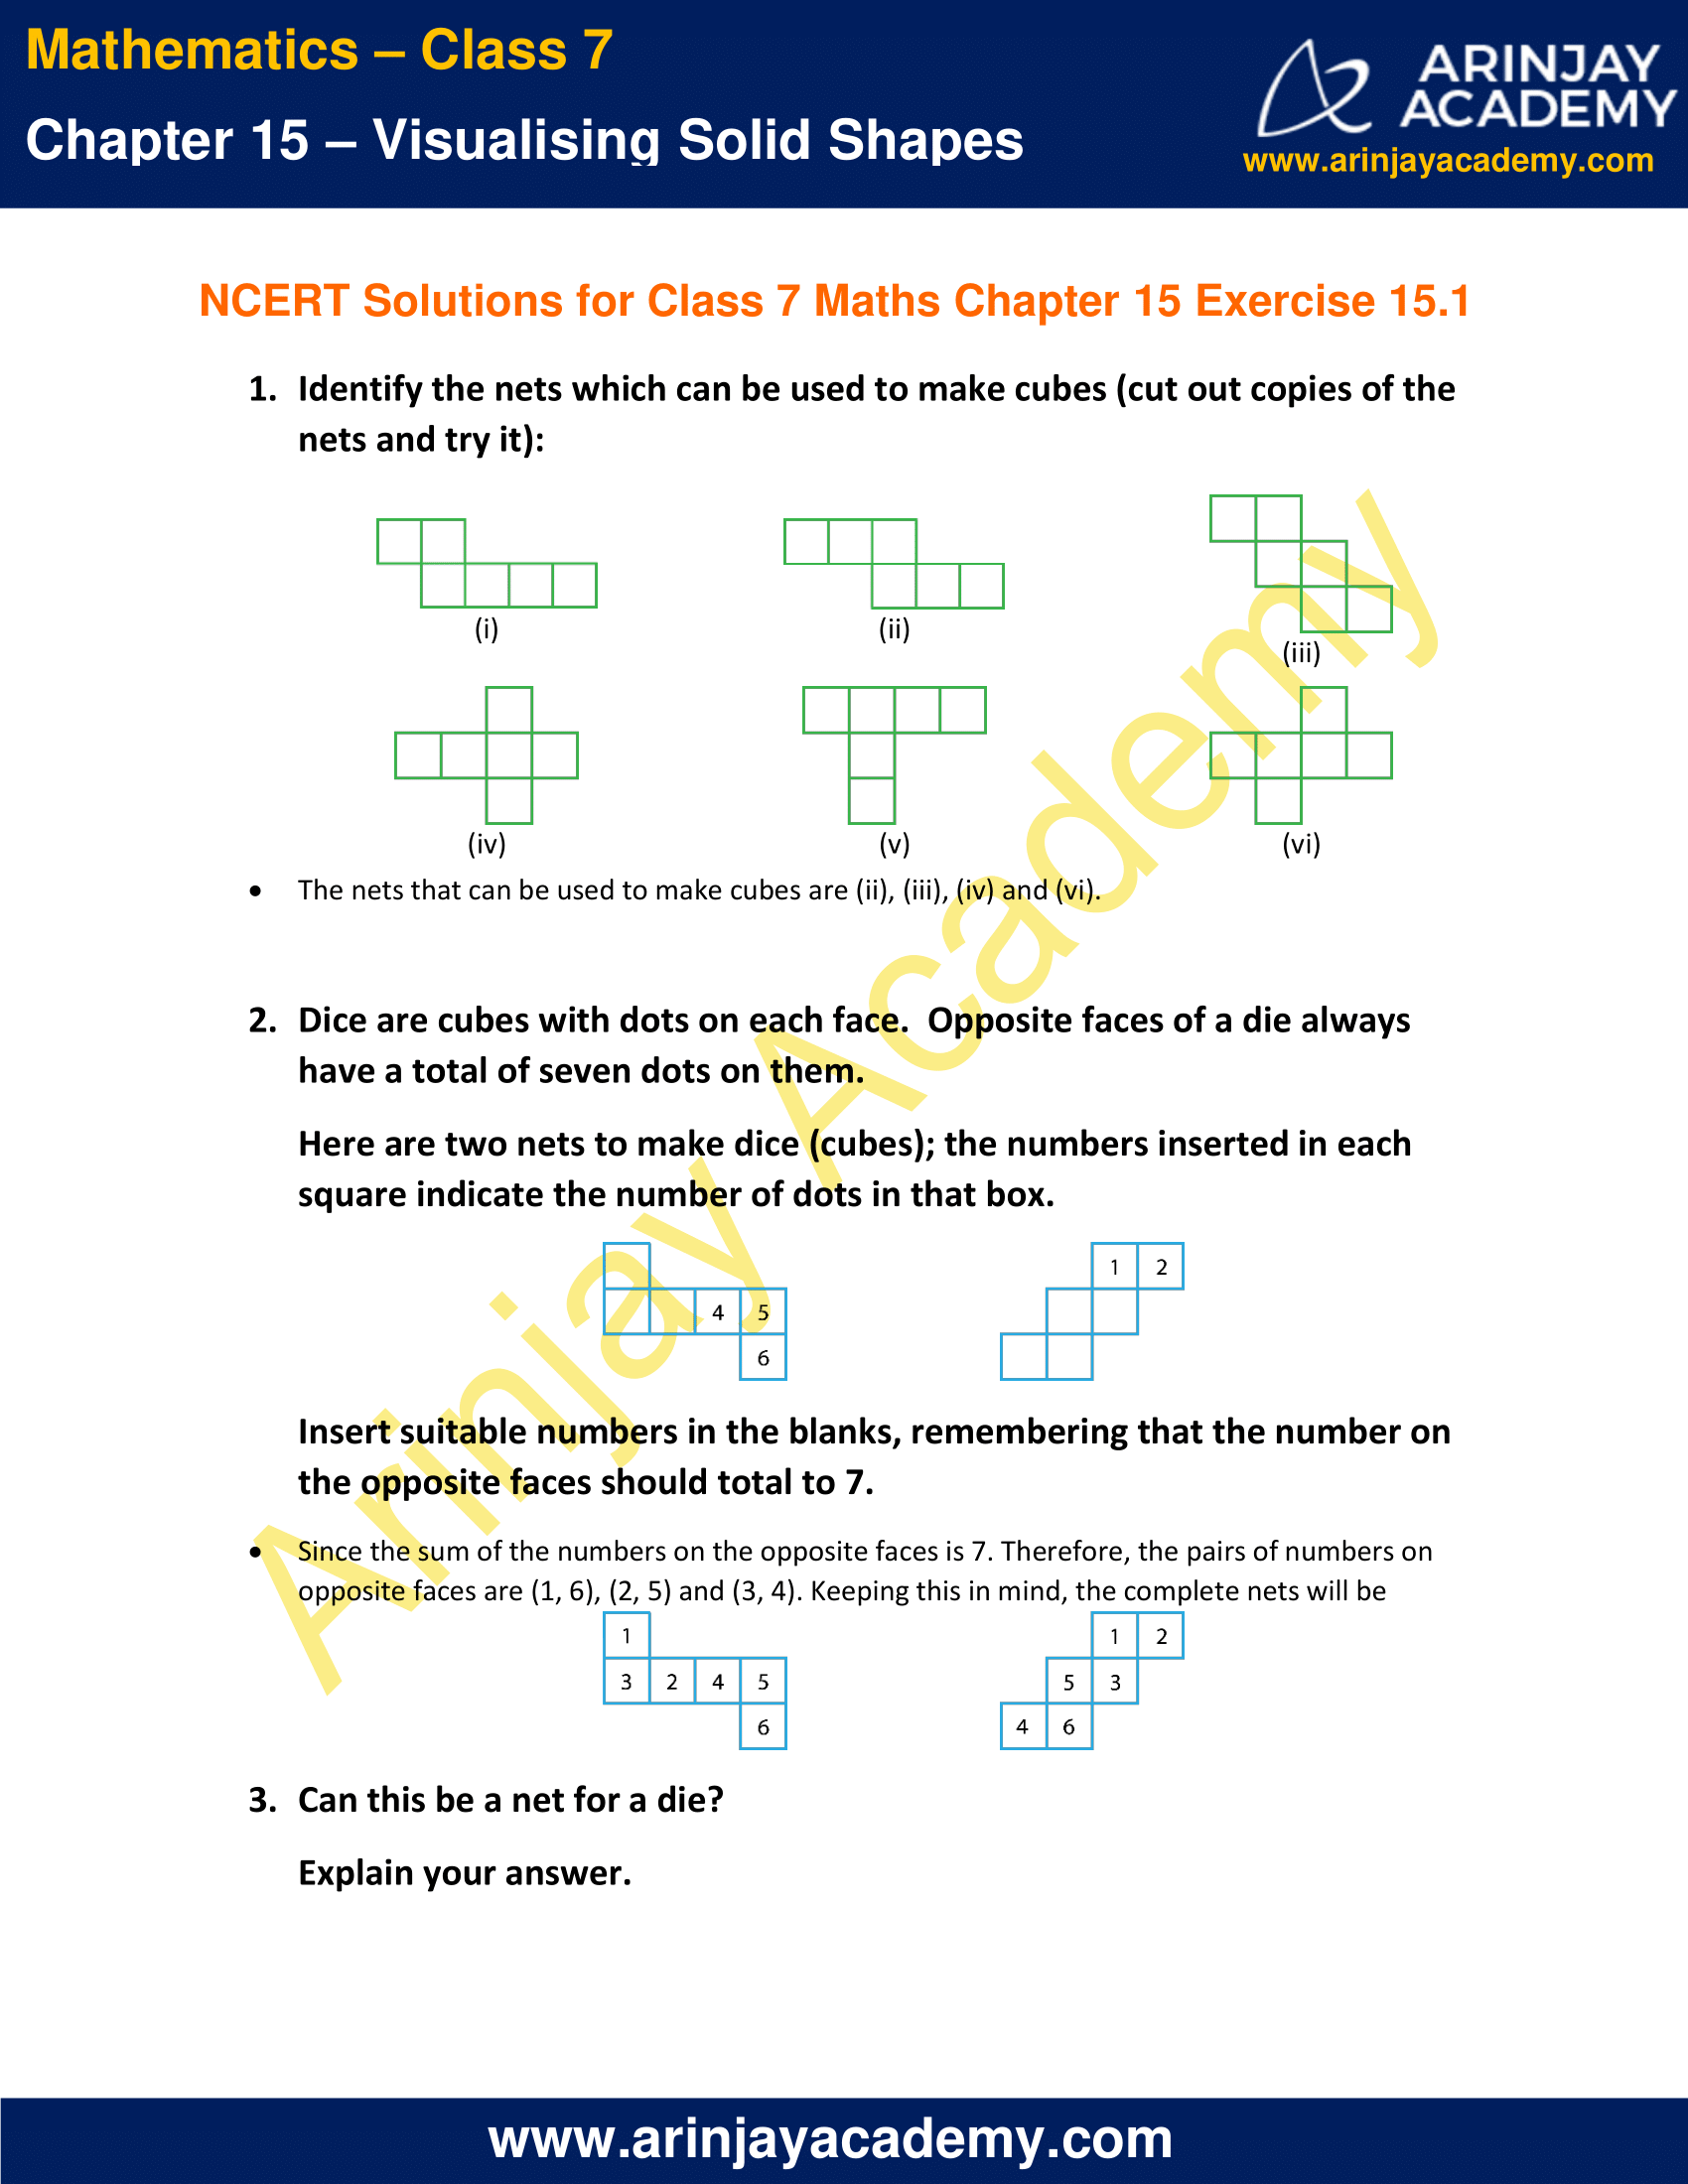 NCERT Solutions for Class 7 Maths Chapter 15 Exercise 15.1 image 1